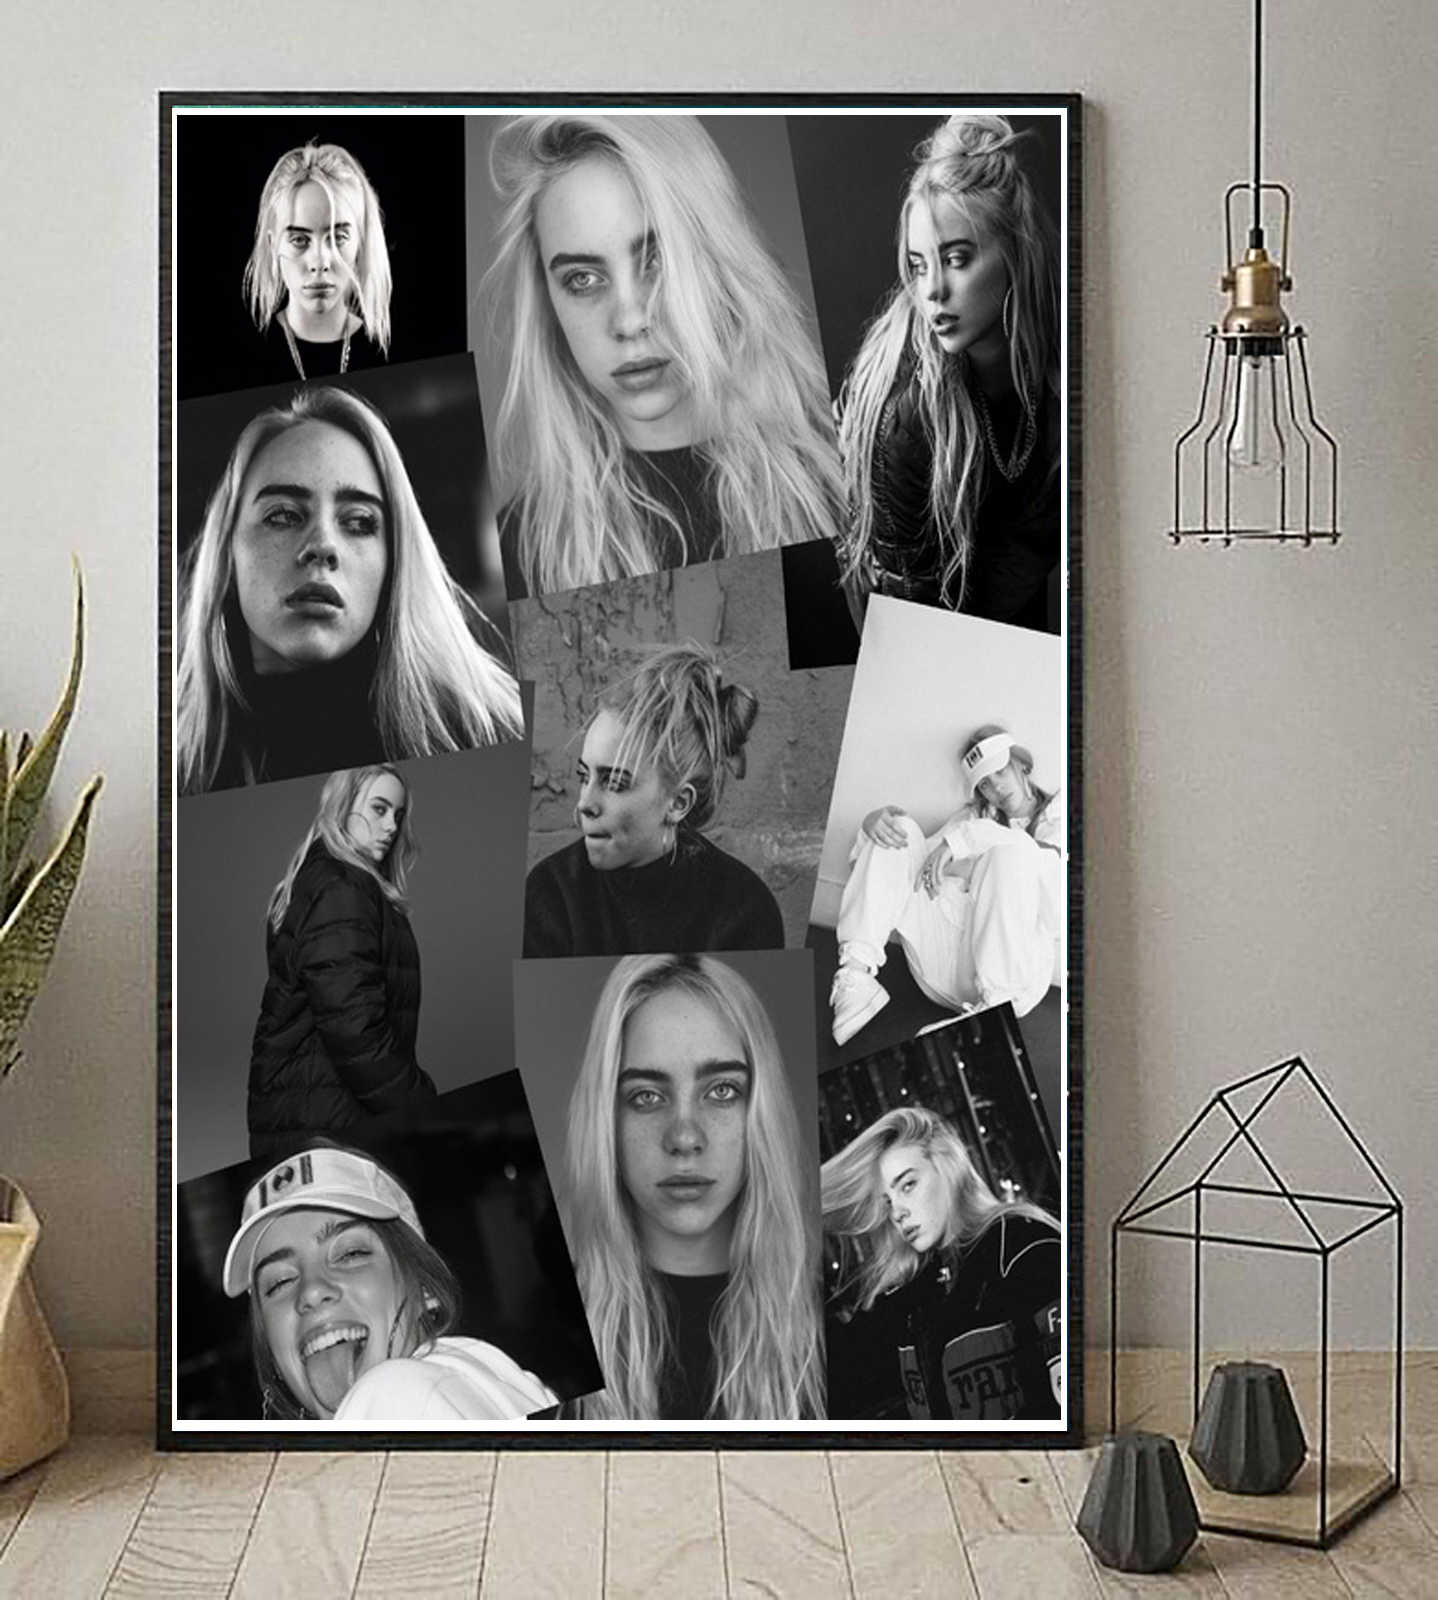 Billie Eilish Don't Smile at Me Pop Music Star Album Poster Prints Canvas Art Painting Wall Pictures For Living Room Home Decor